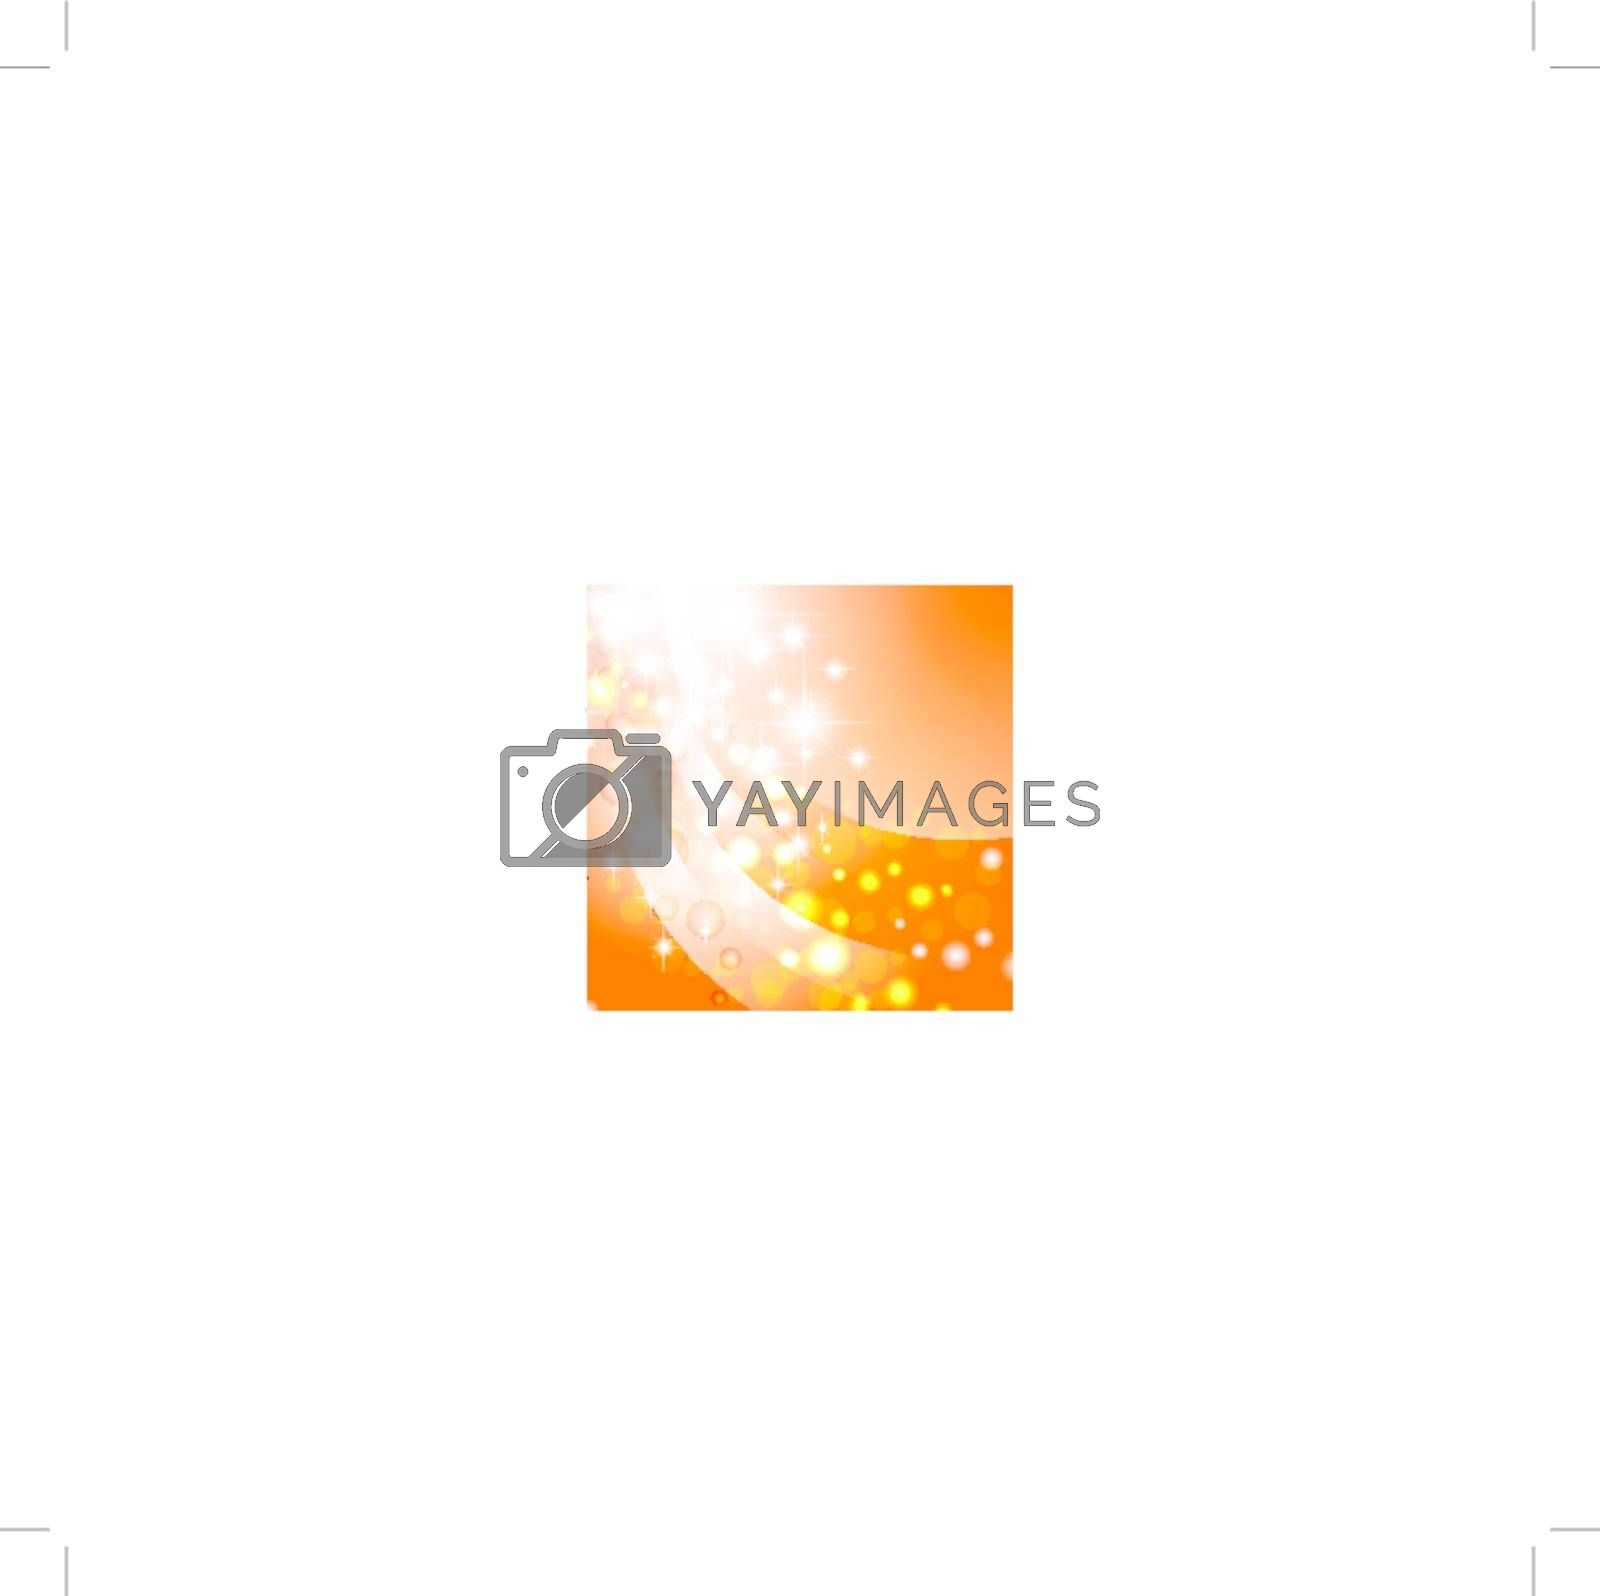 bright abstract wavy theme with stars over orange, copyspace